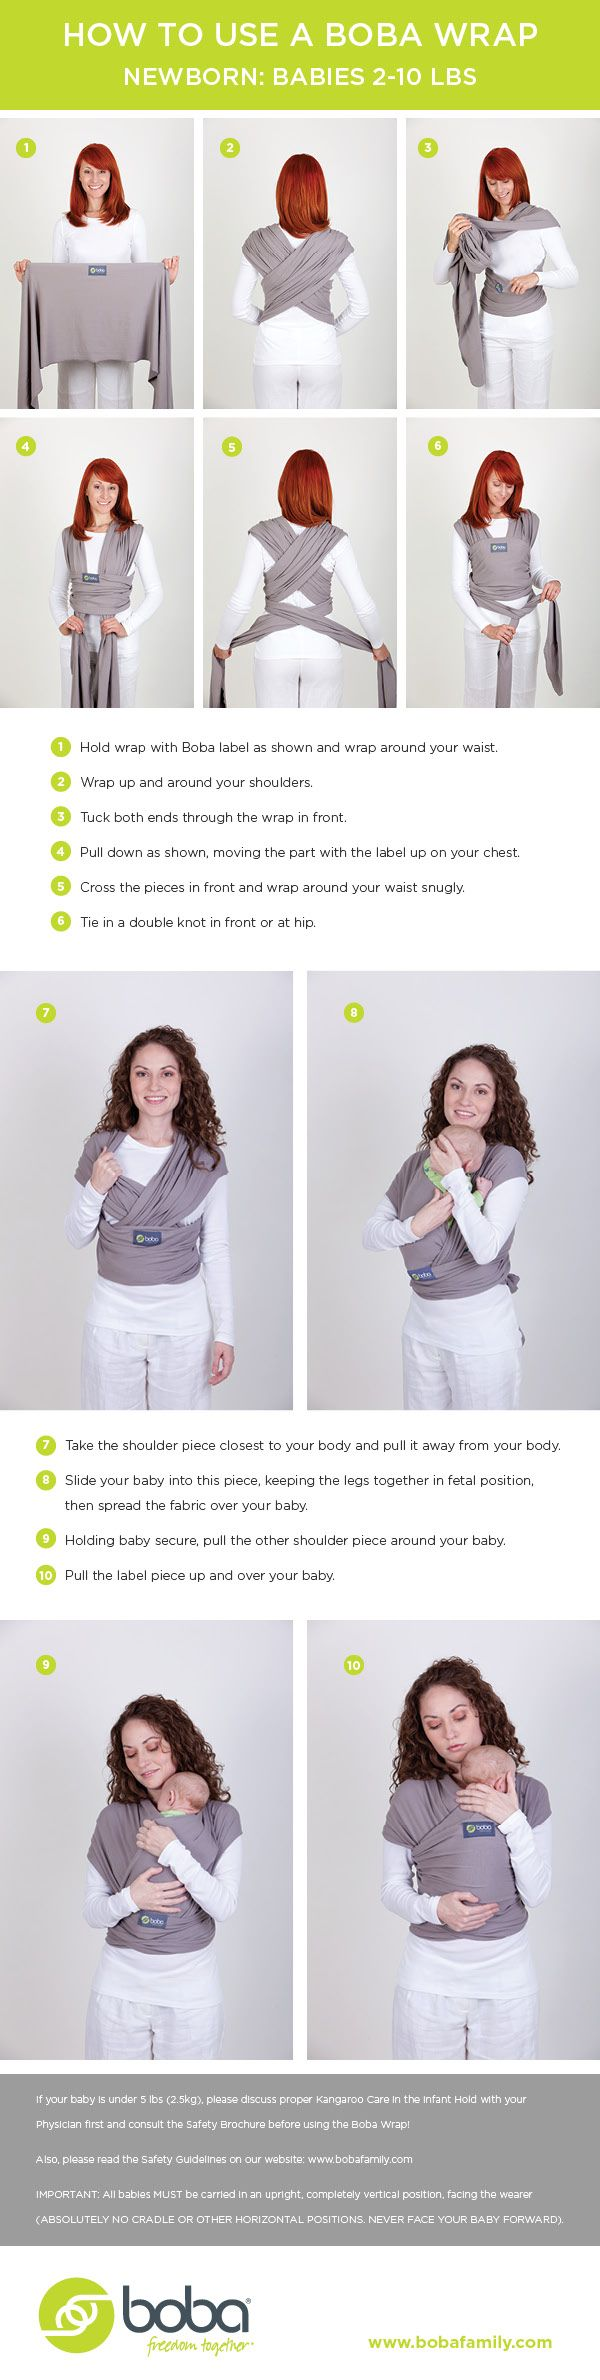 Best place after the womb! How to tie a stretchy baby wrap and carry your newborn. #babywearing